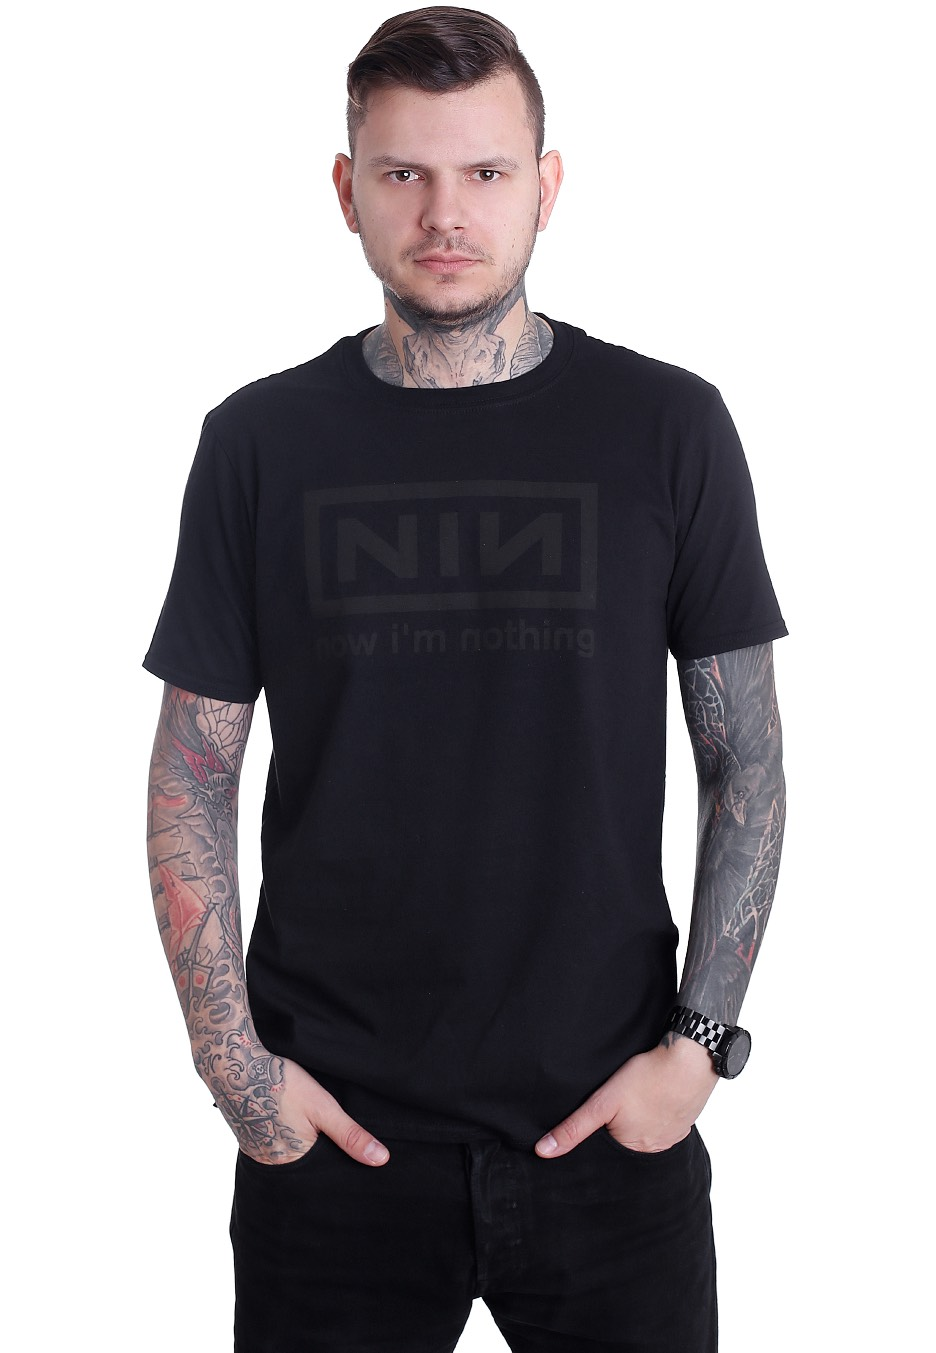 Nine Inch Nails - Now I\'m Nothing Charcoal - T-Shirt - Official Rock ...